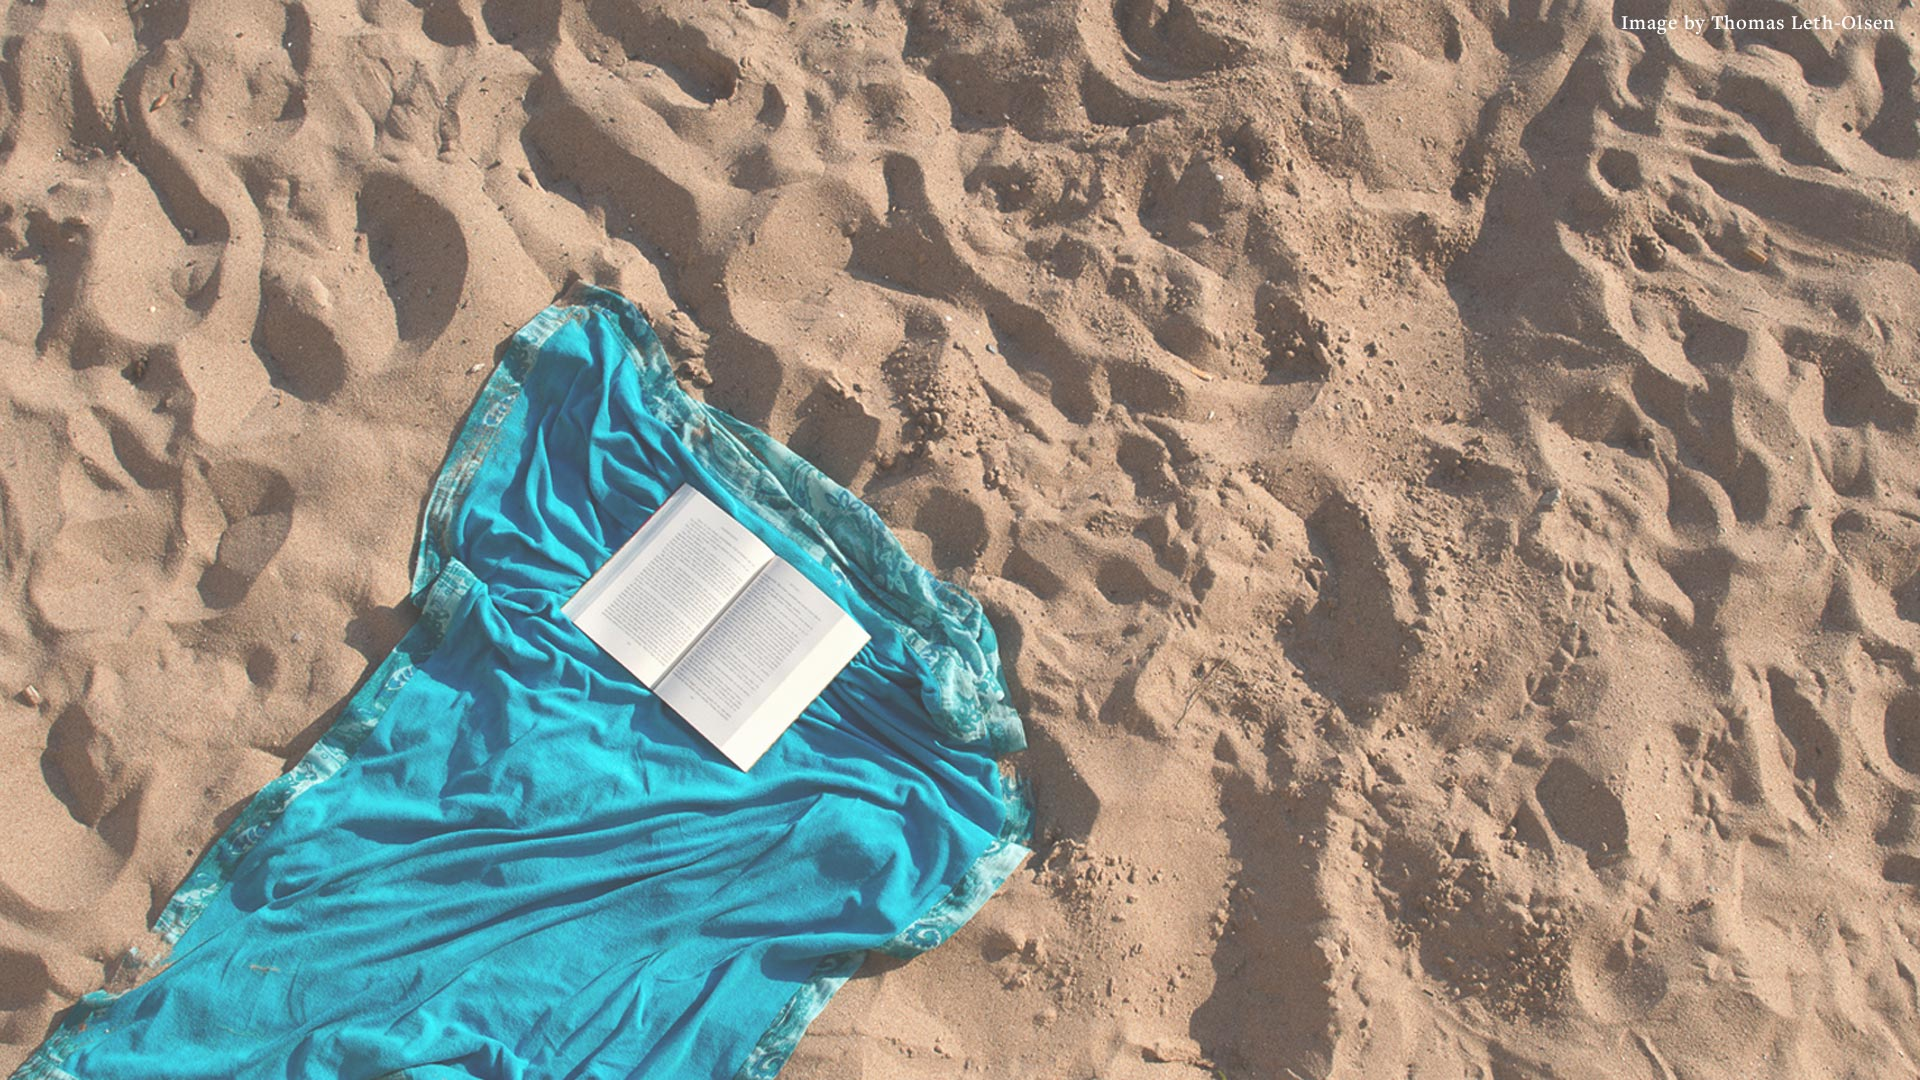 Open book on the sand